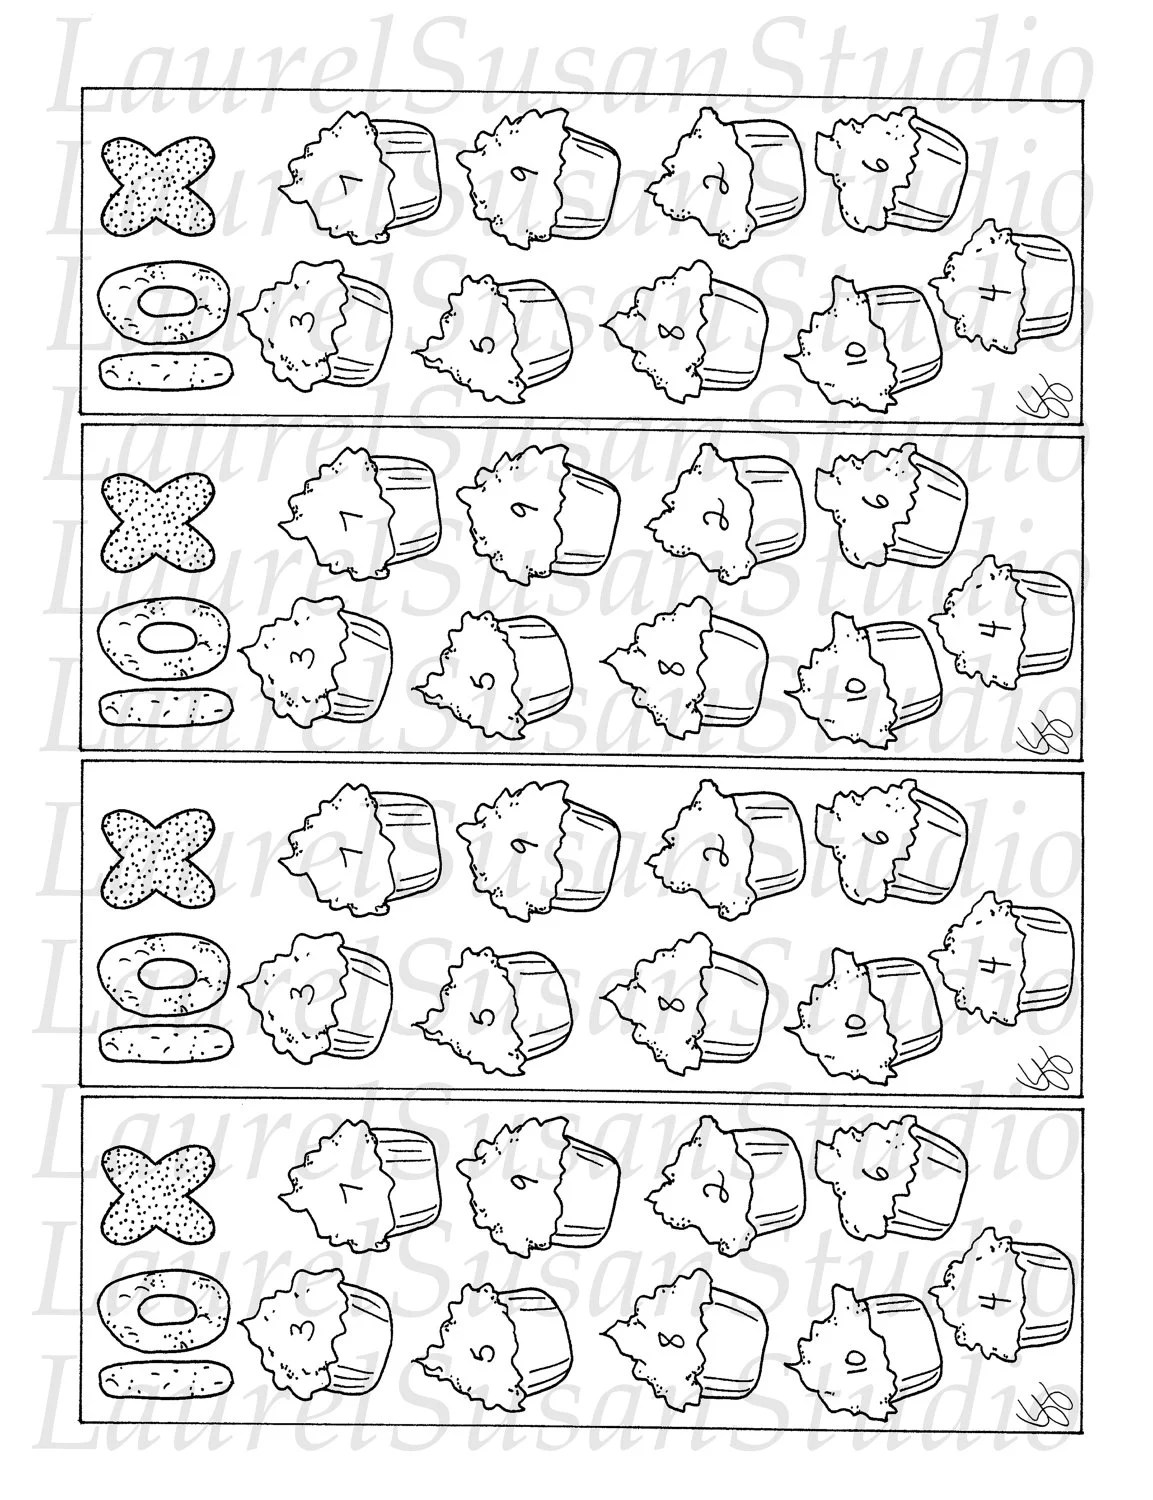 Items similar to Multiplication Ten Tables Coloring Page